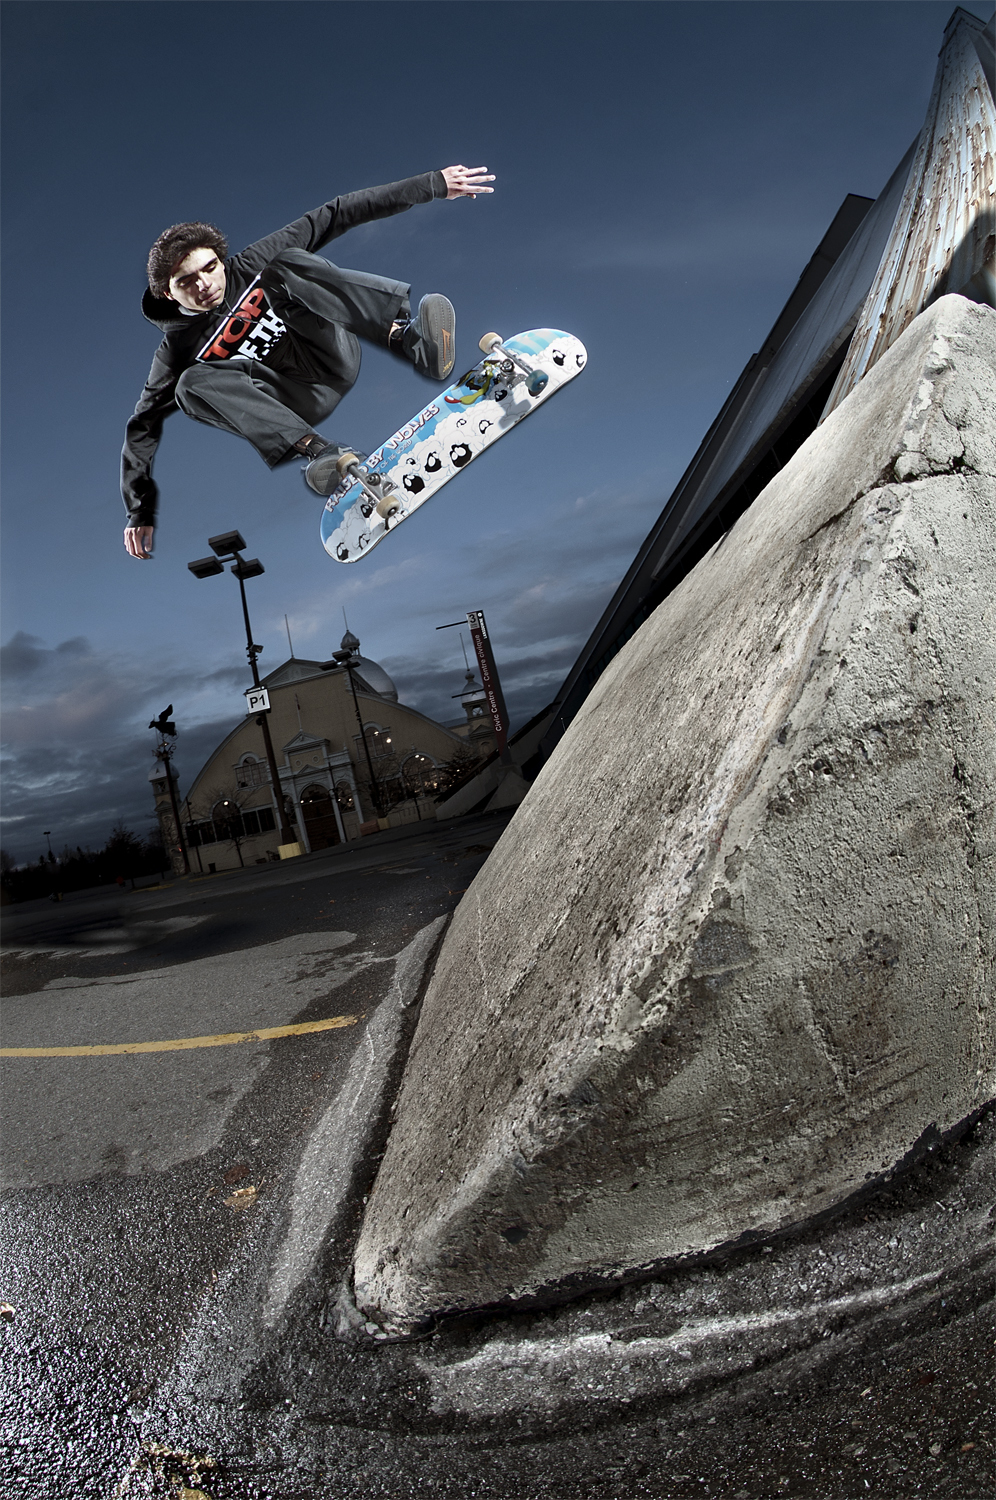 Matt Patafie, Switch Heelflip, Ottawa, ON 2011